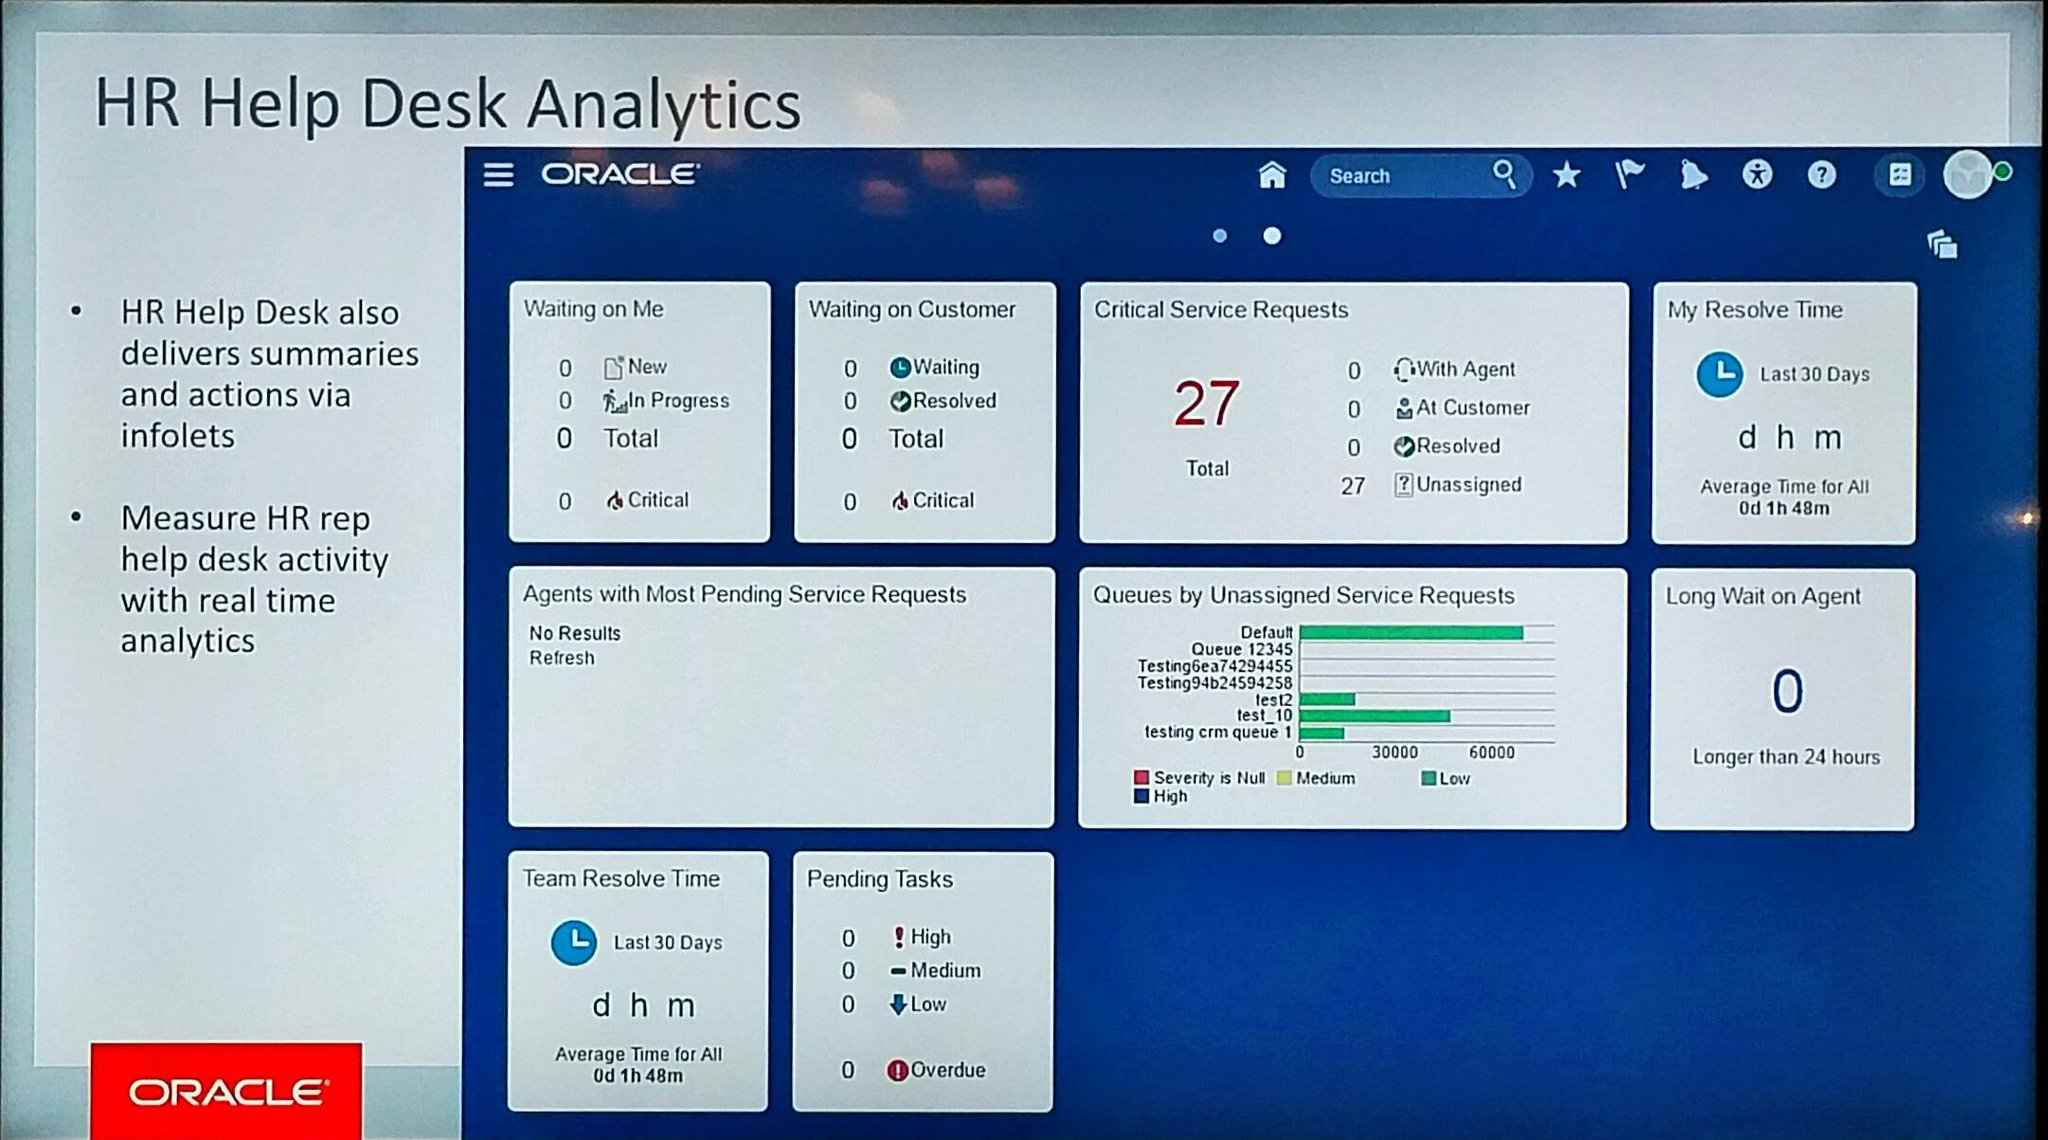 Looking at @OracleHCM #Helpdesk #Analytics #OracleHCM https://t.co/bO0bqh3EFA